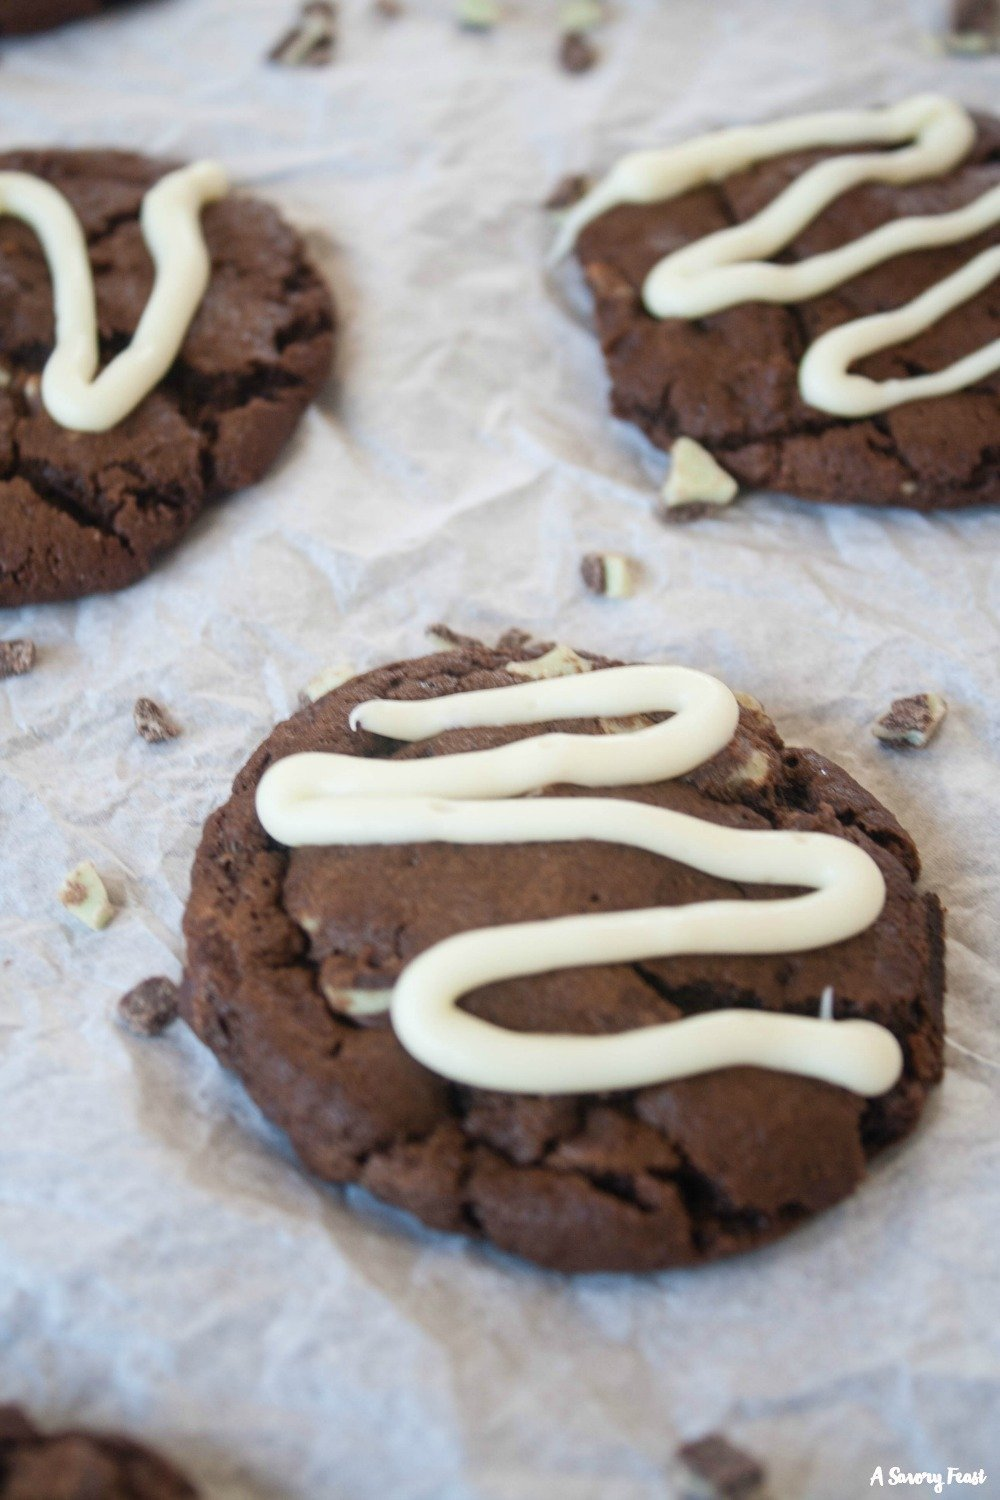 Kick off your holiday baking with these pretty Andes Mint Chocolate Cookies.